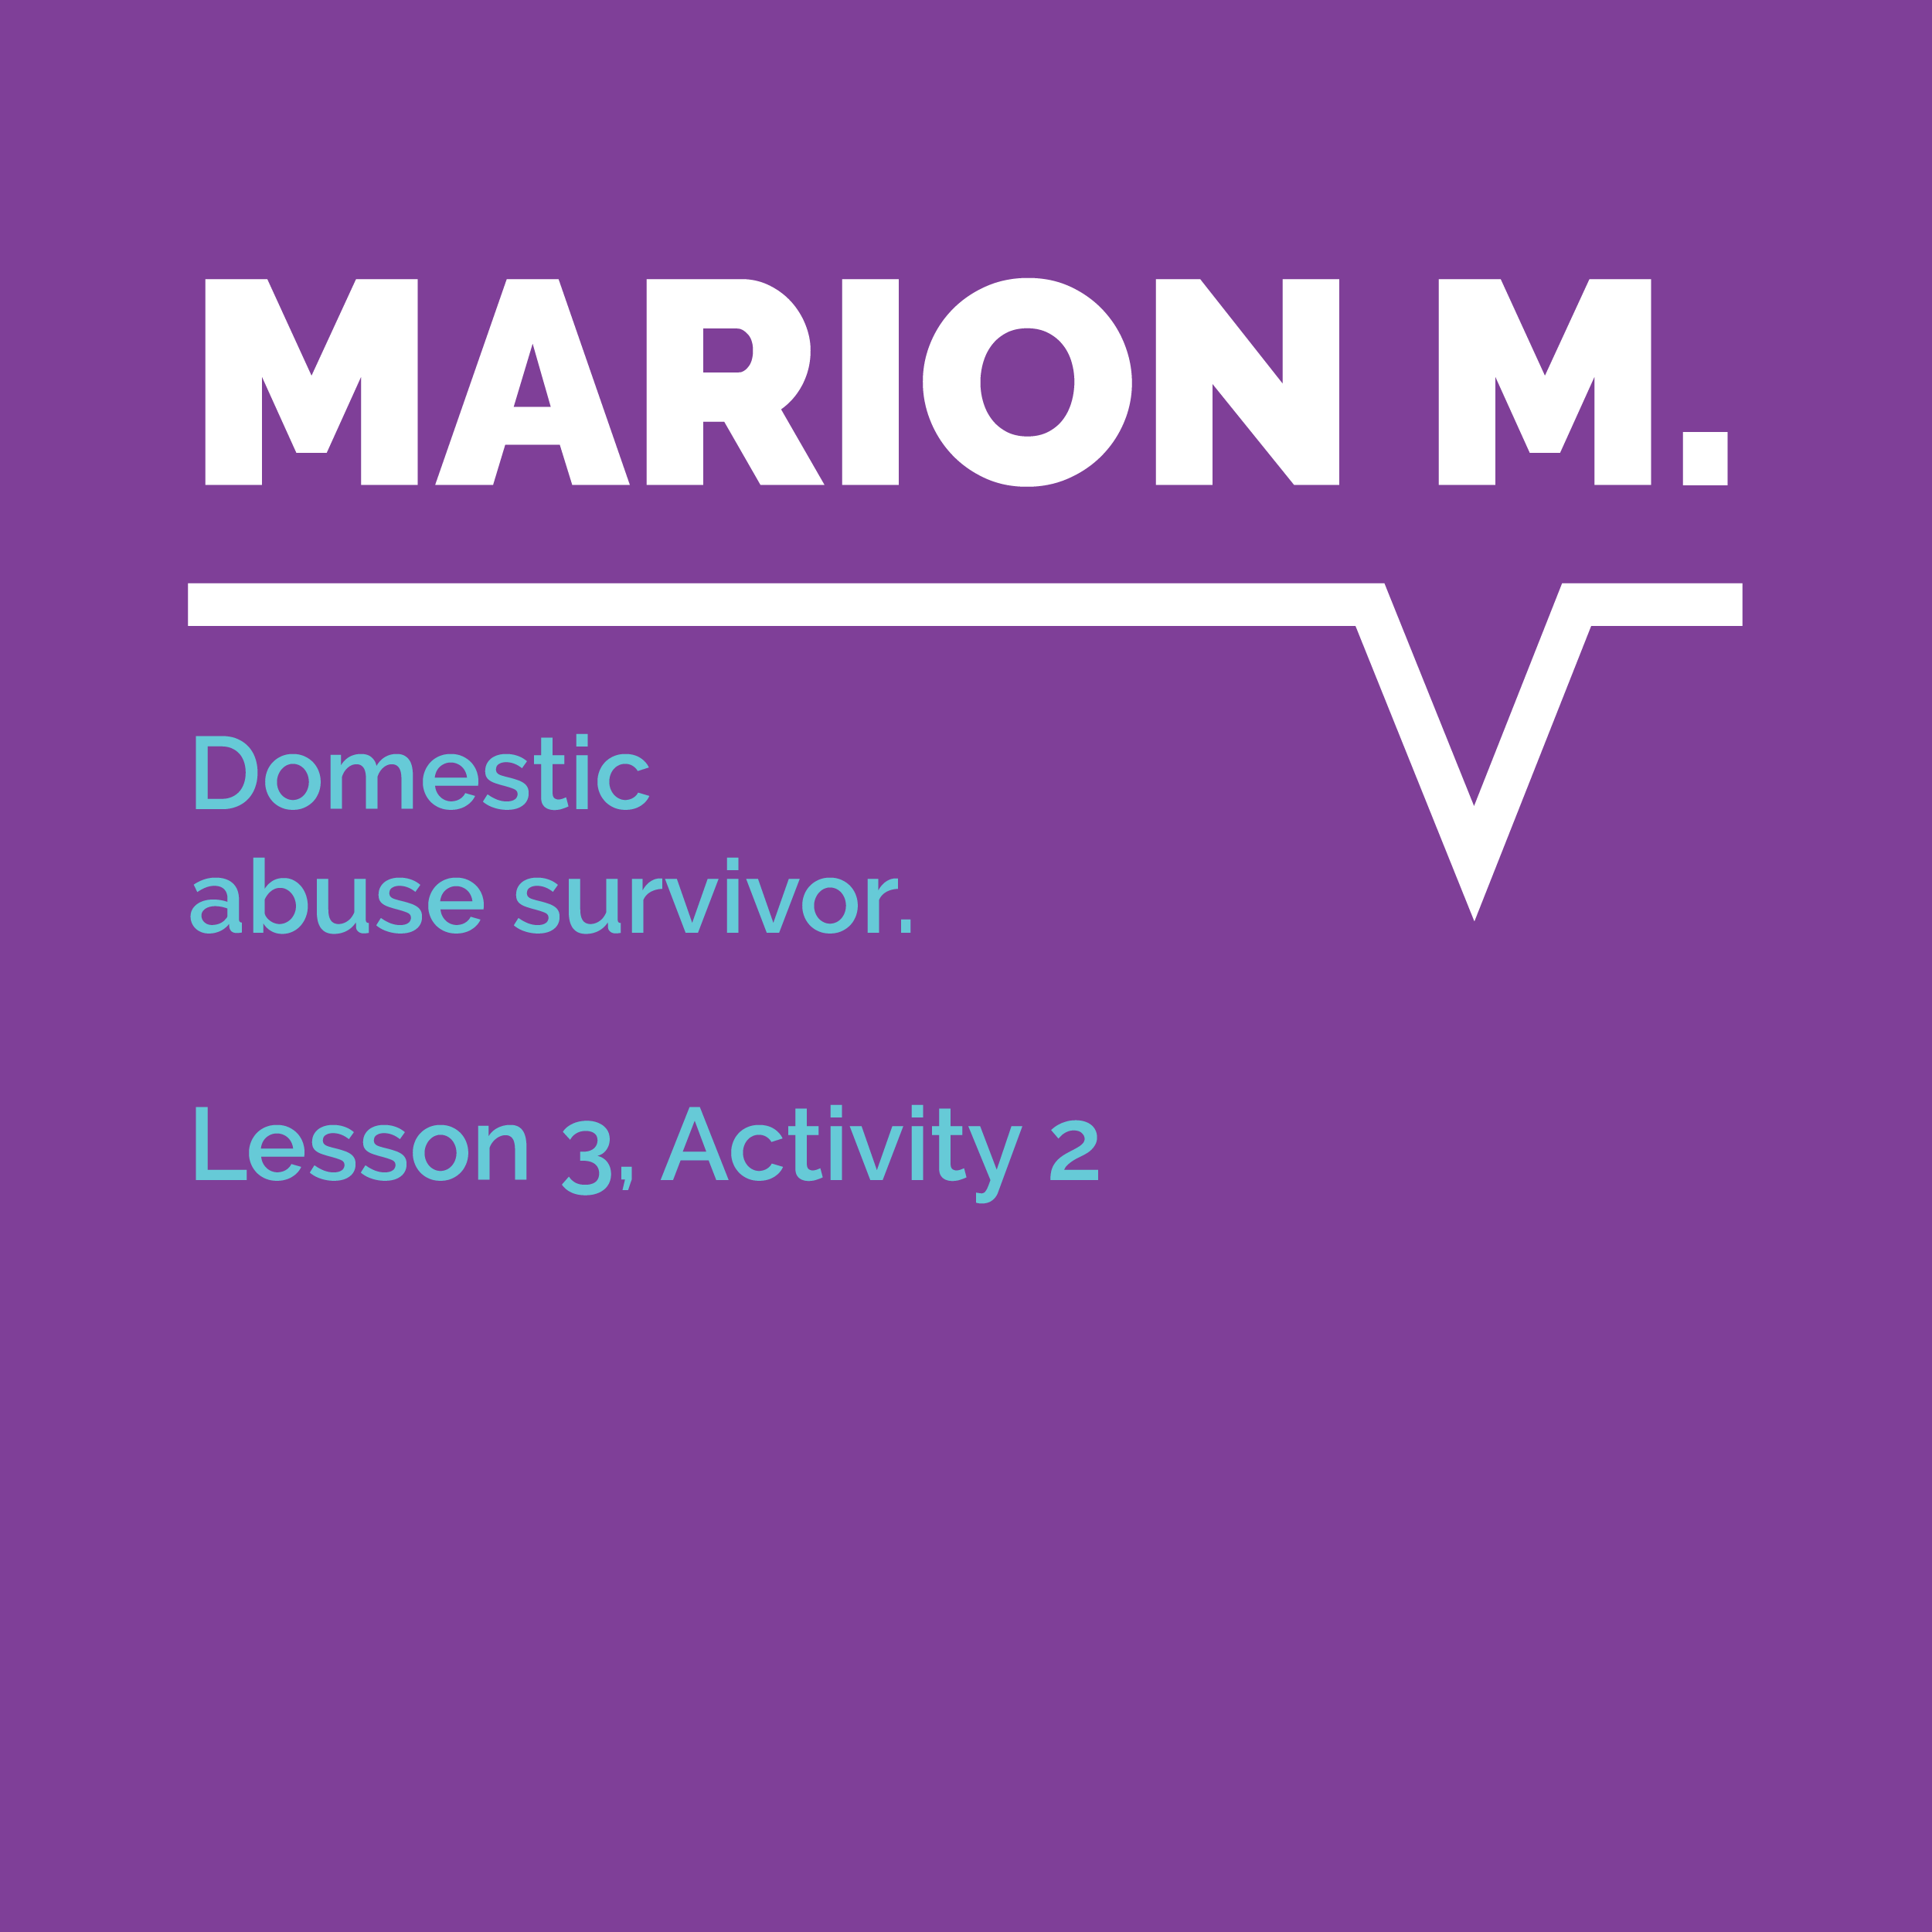 Speaking Out Learning Resource, Lesson 3, Activity 2: Marion M., domestic abuse survivor